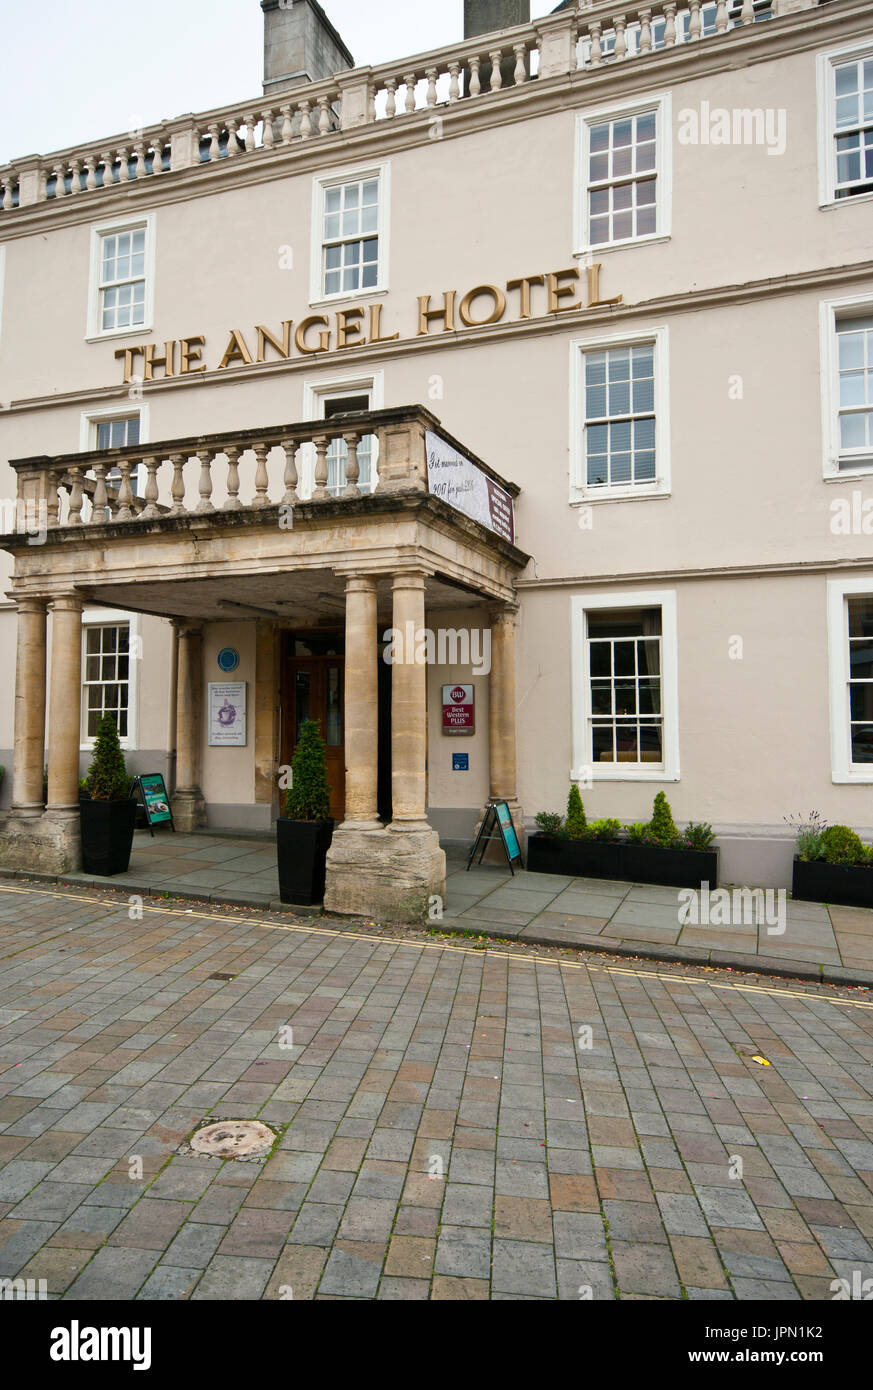 The Angel Hotel The Market Place Chippenham Wiltshire Wilts England UK A Best Western Hotel - Stock Image